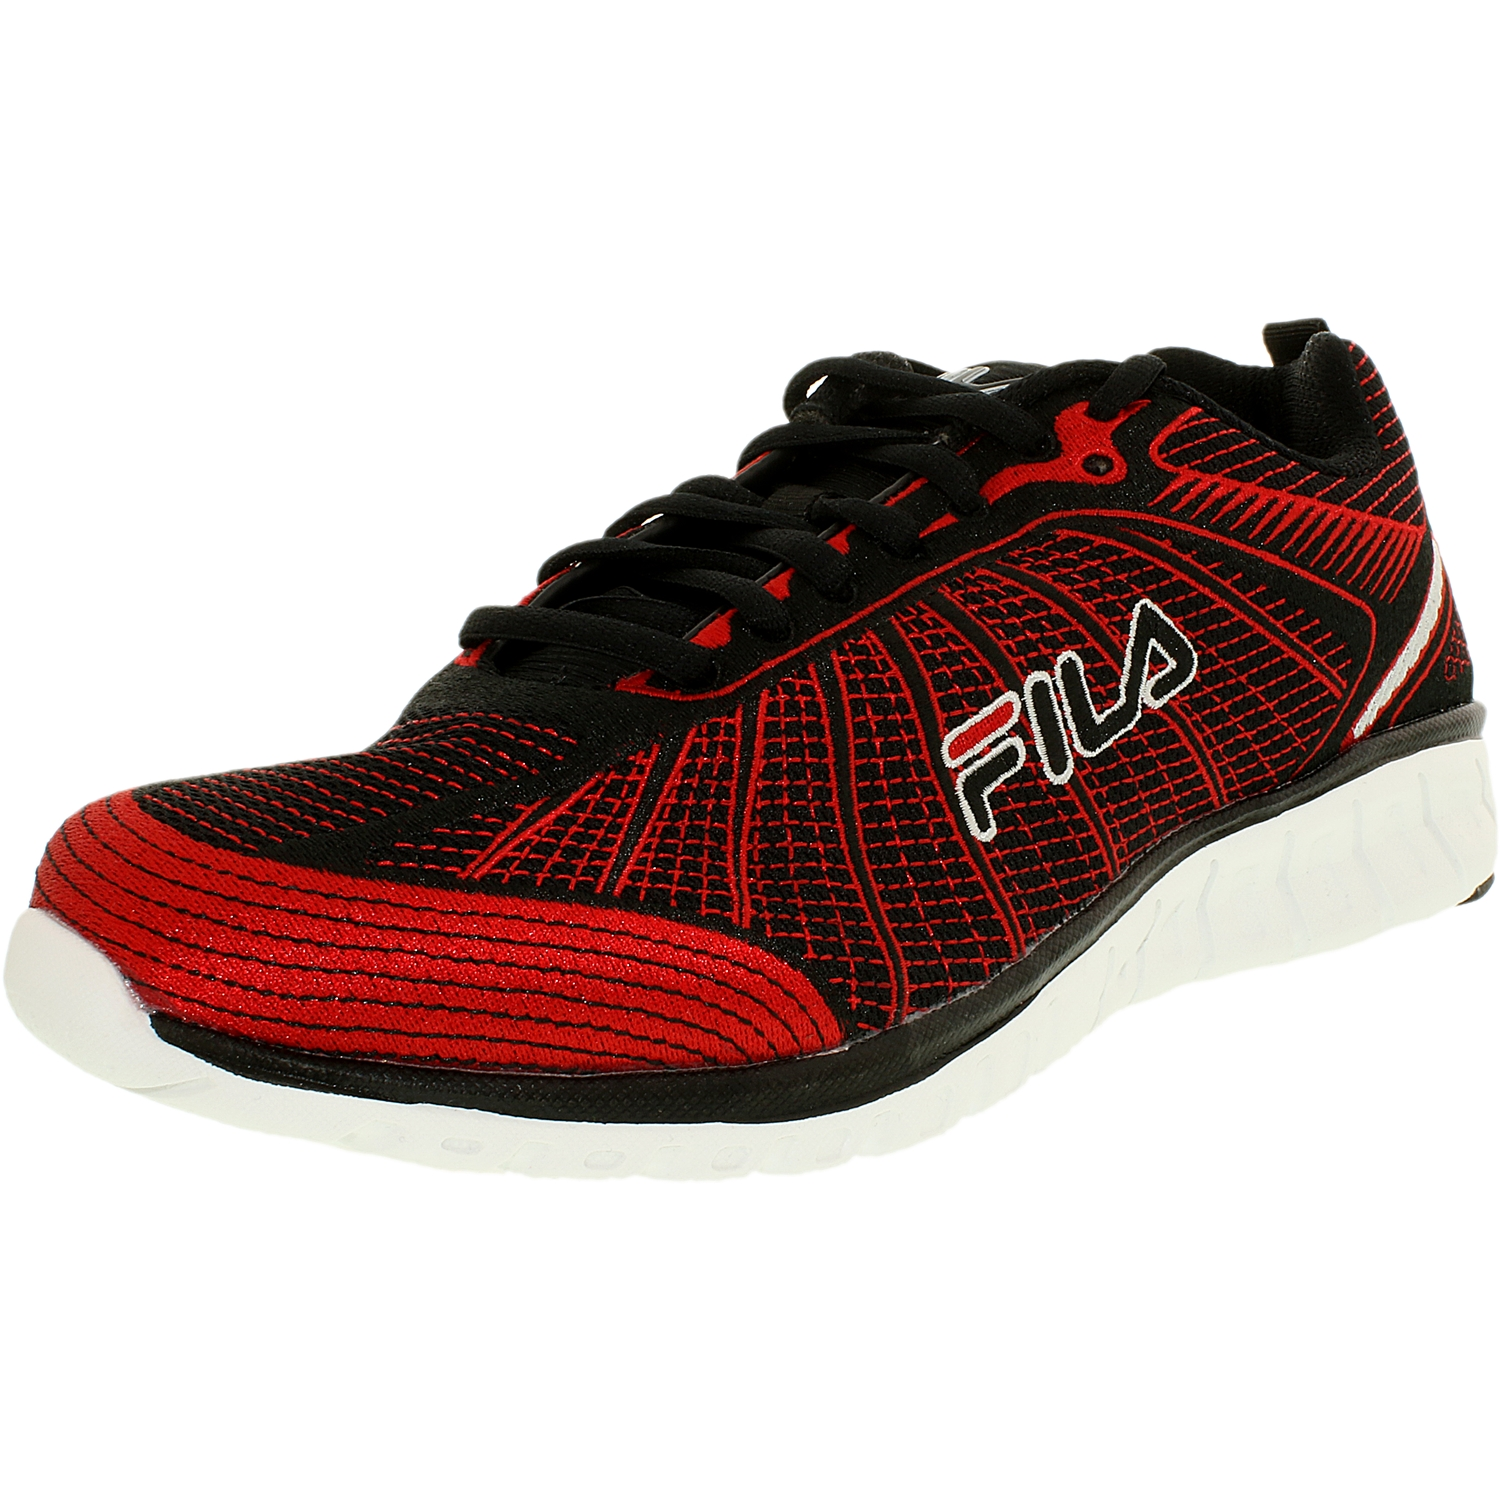 Fila Men's Speedweave Run Ii Neon Green   Black Ankle-High Running Shoe 9.5M by Fila